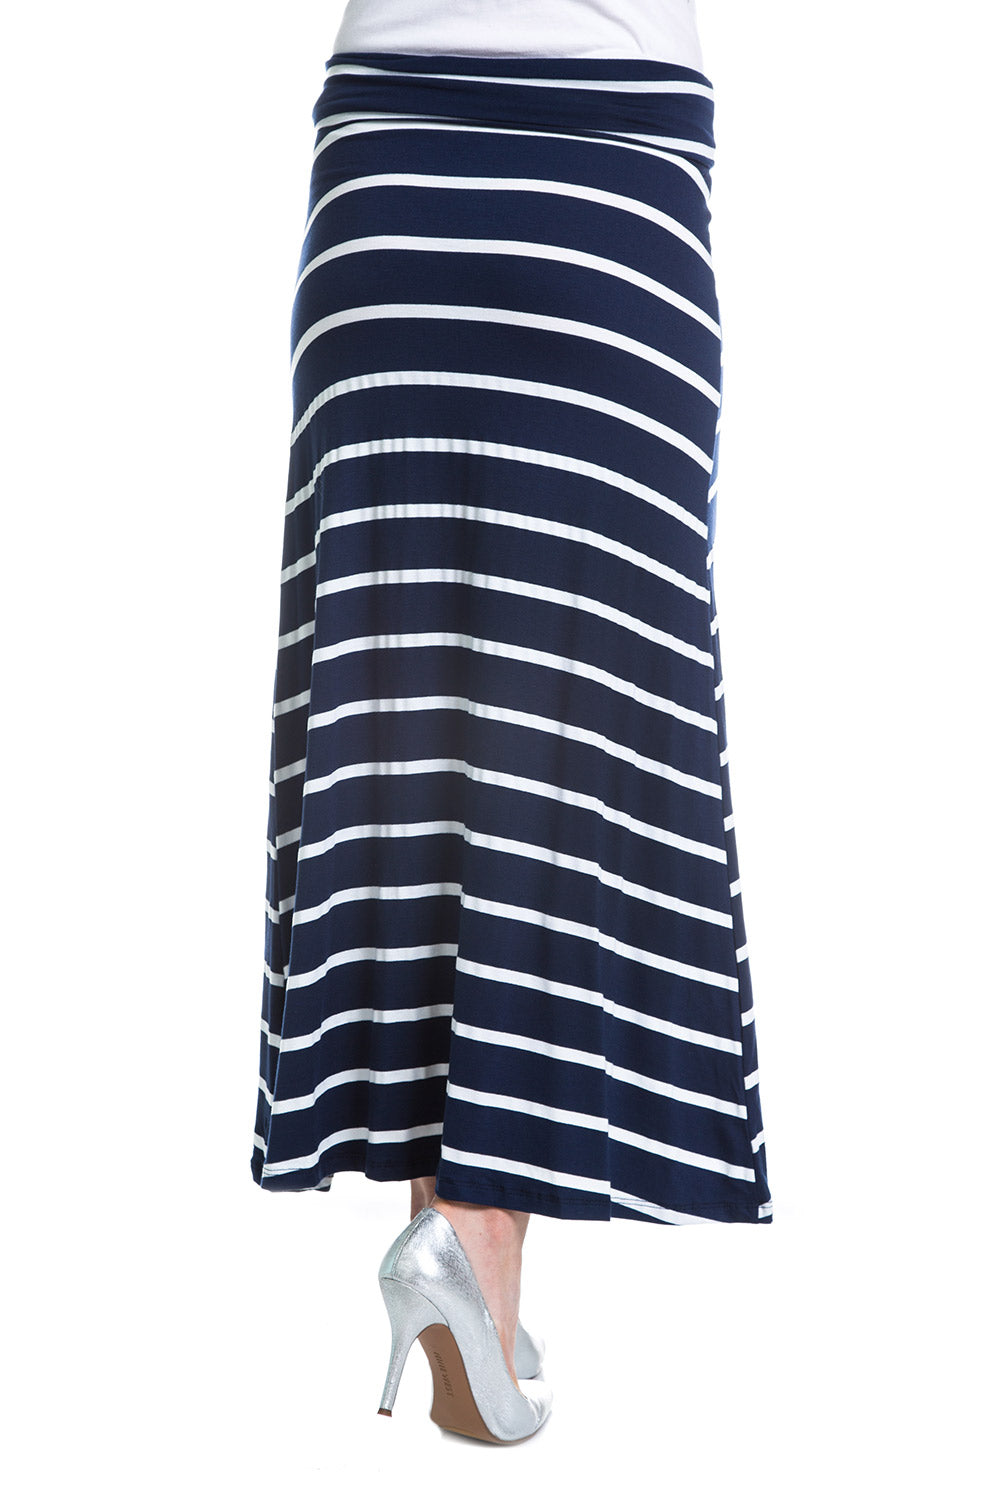 Type 4 Navy Stripes Maxi Skirt